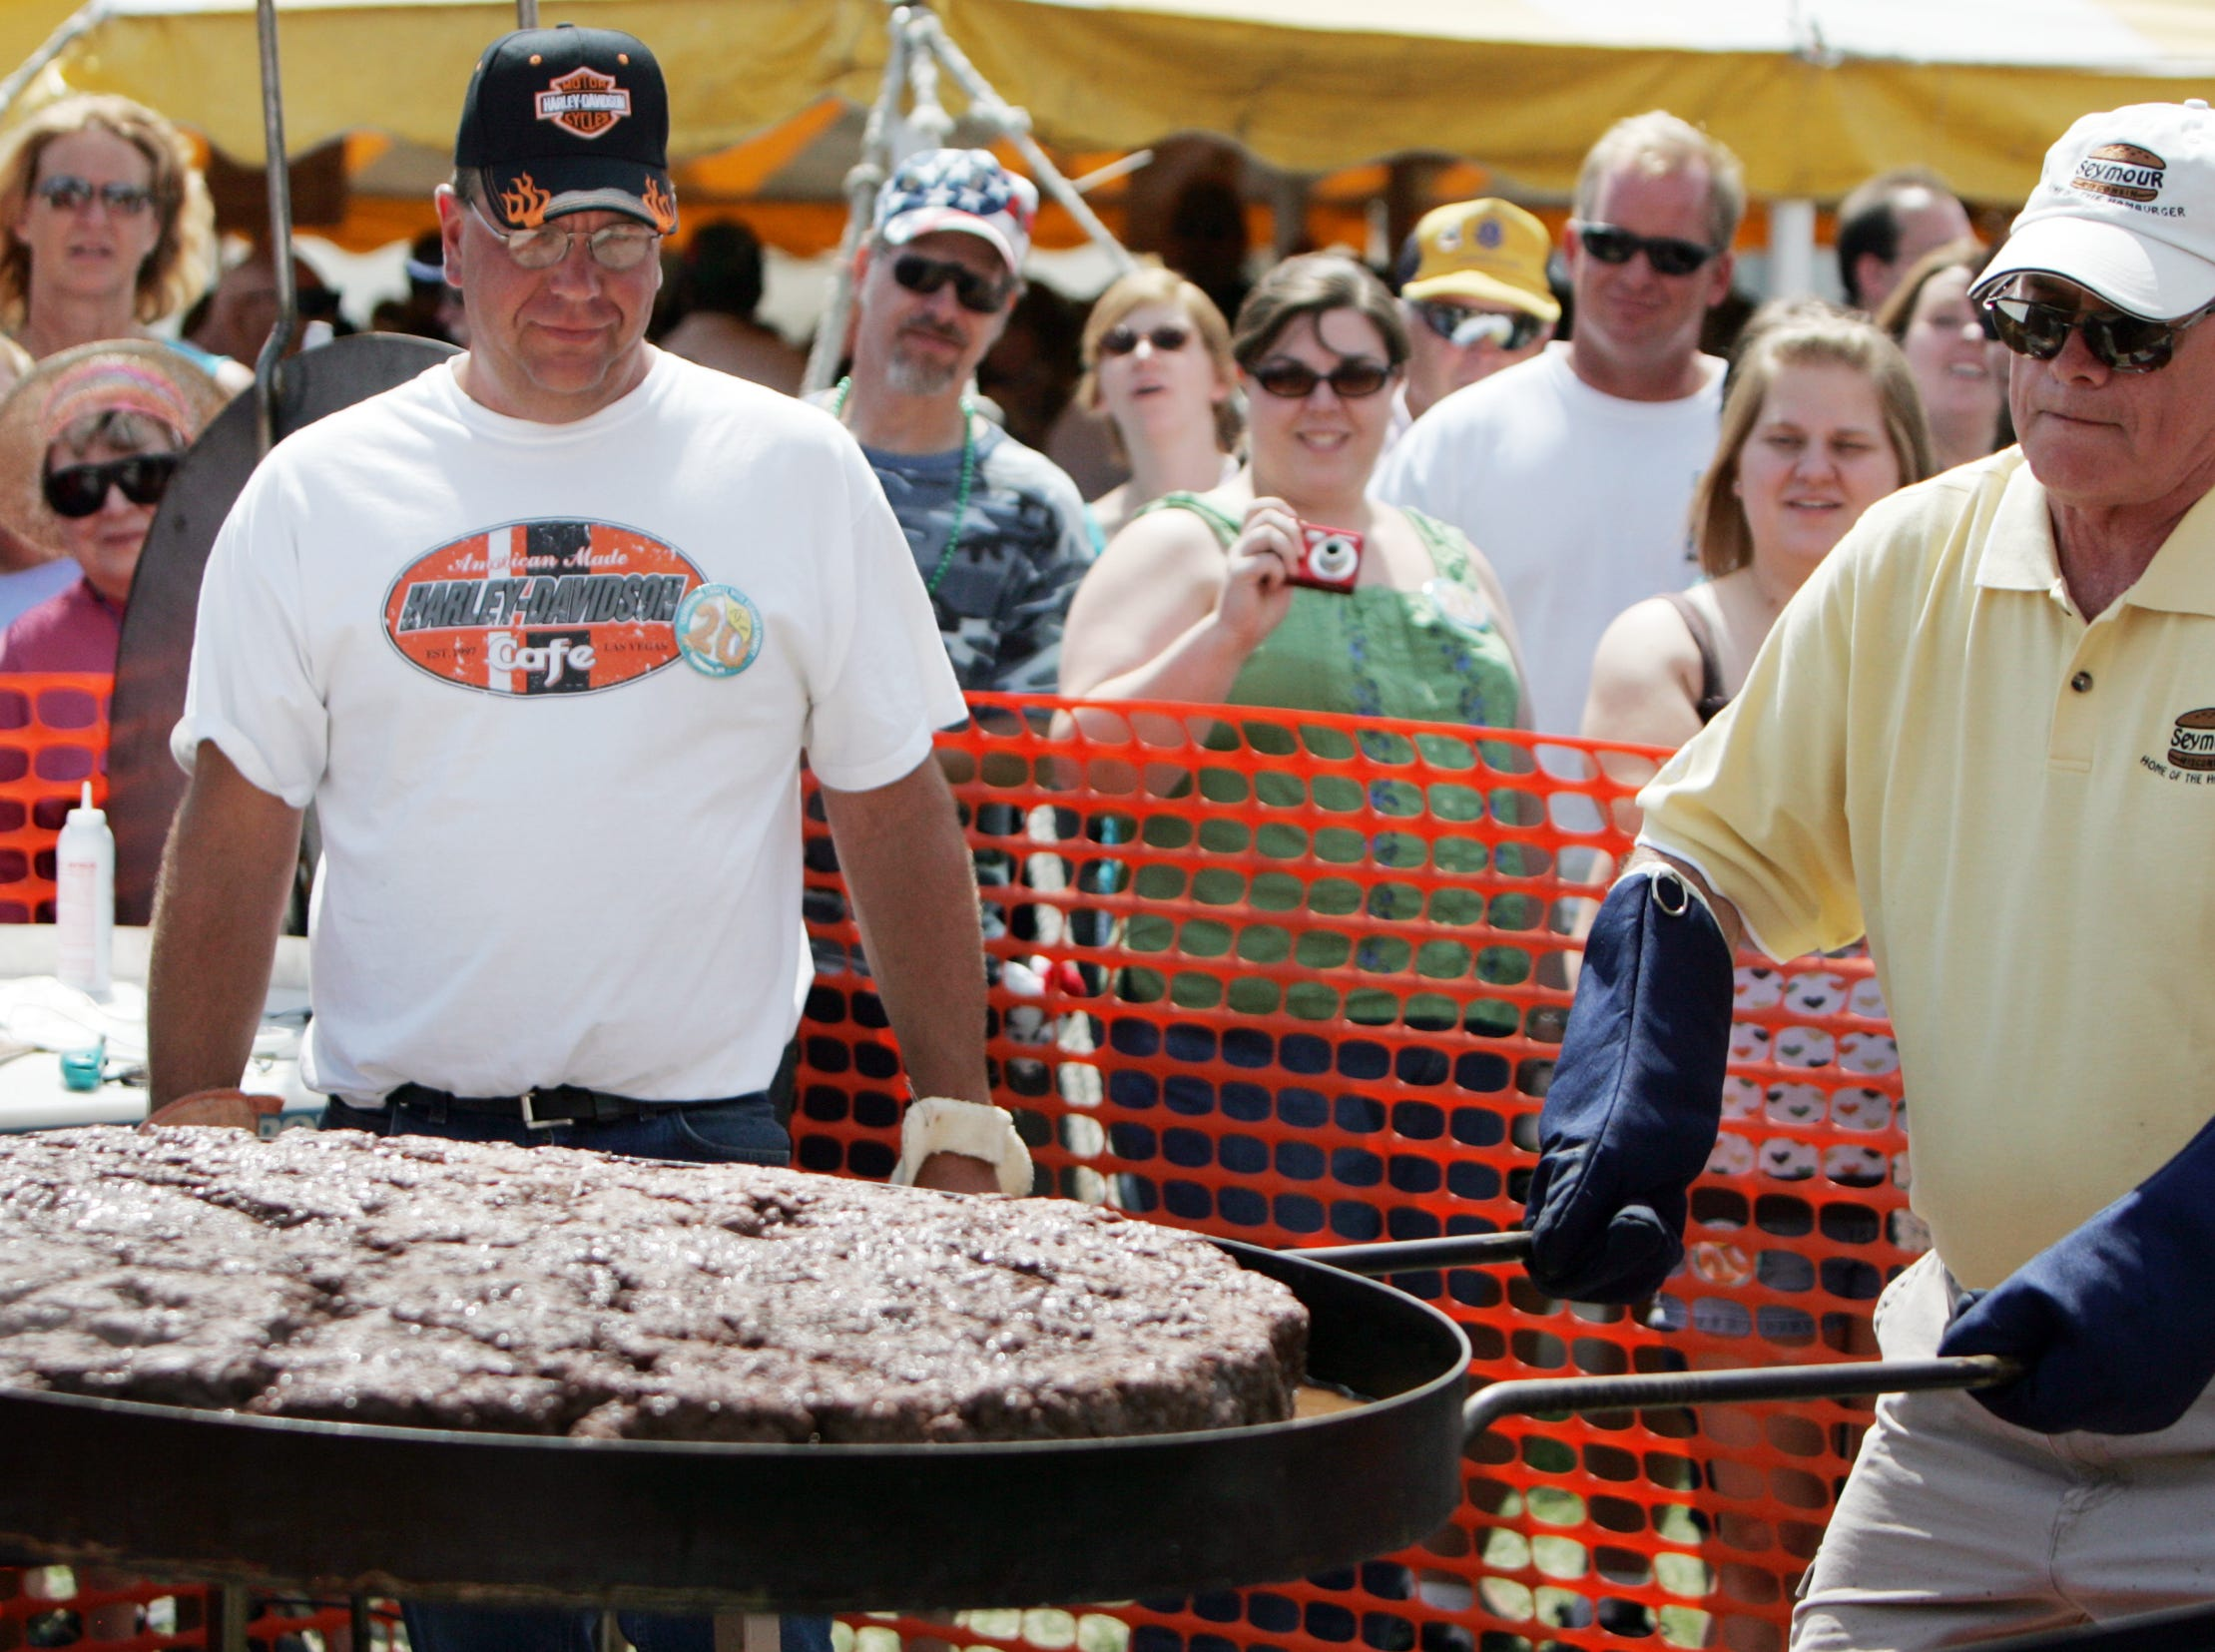 The 20th Annual Burger Fest was held in Seymour, Wis., Saturday, Aug. 9, 2008. Post-Crescent photo by M.P. King.